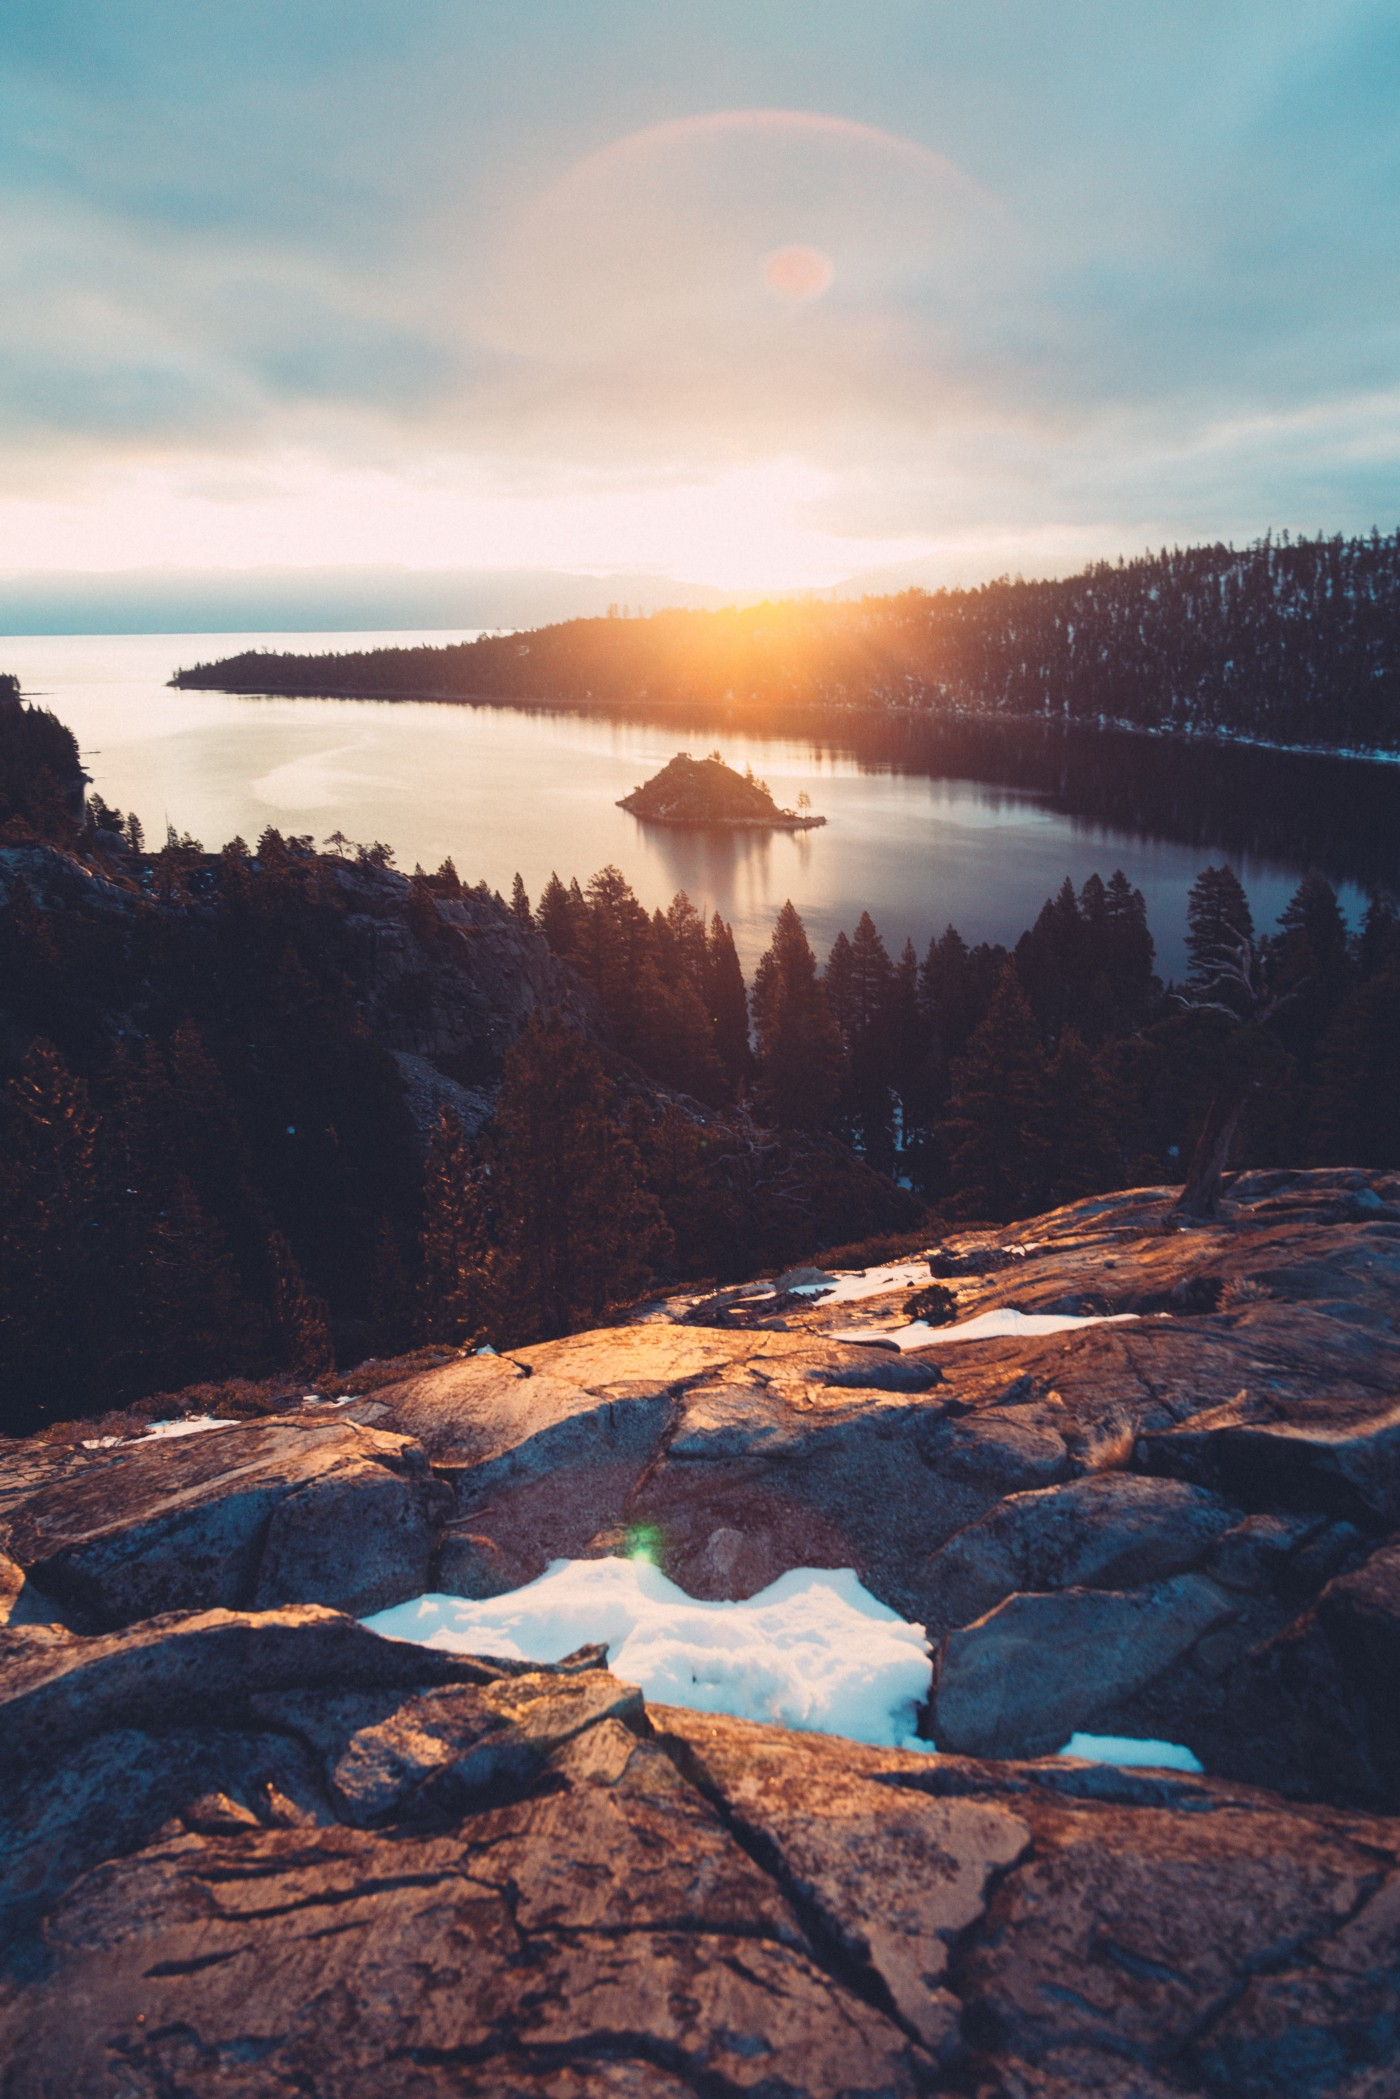 Emerald Bay State Park, South Lake Tahoe, United States Published on October 19, 2015